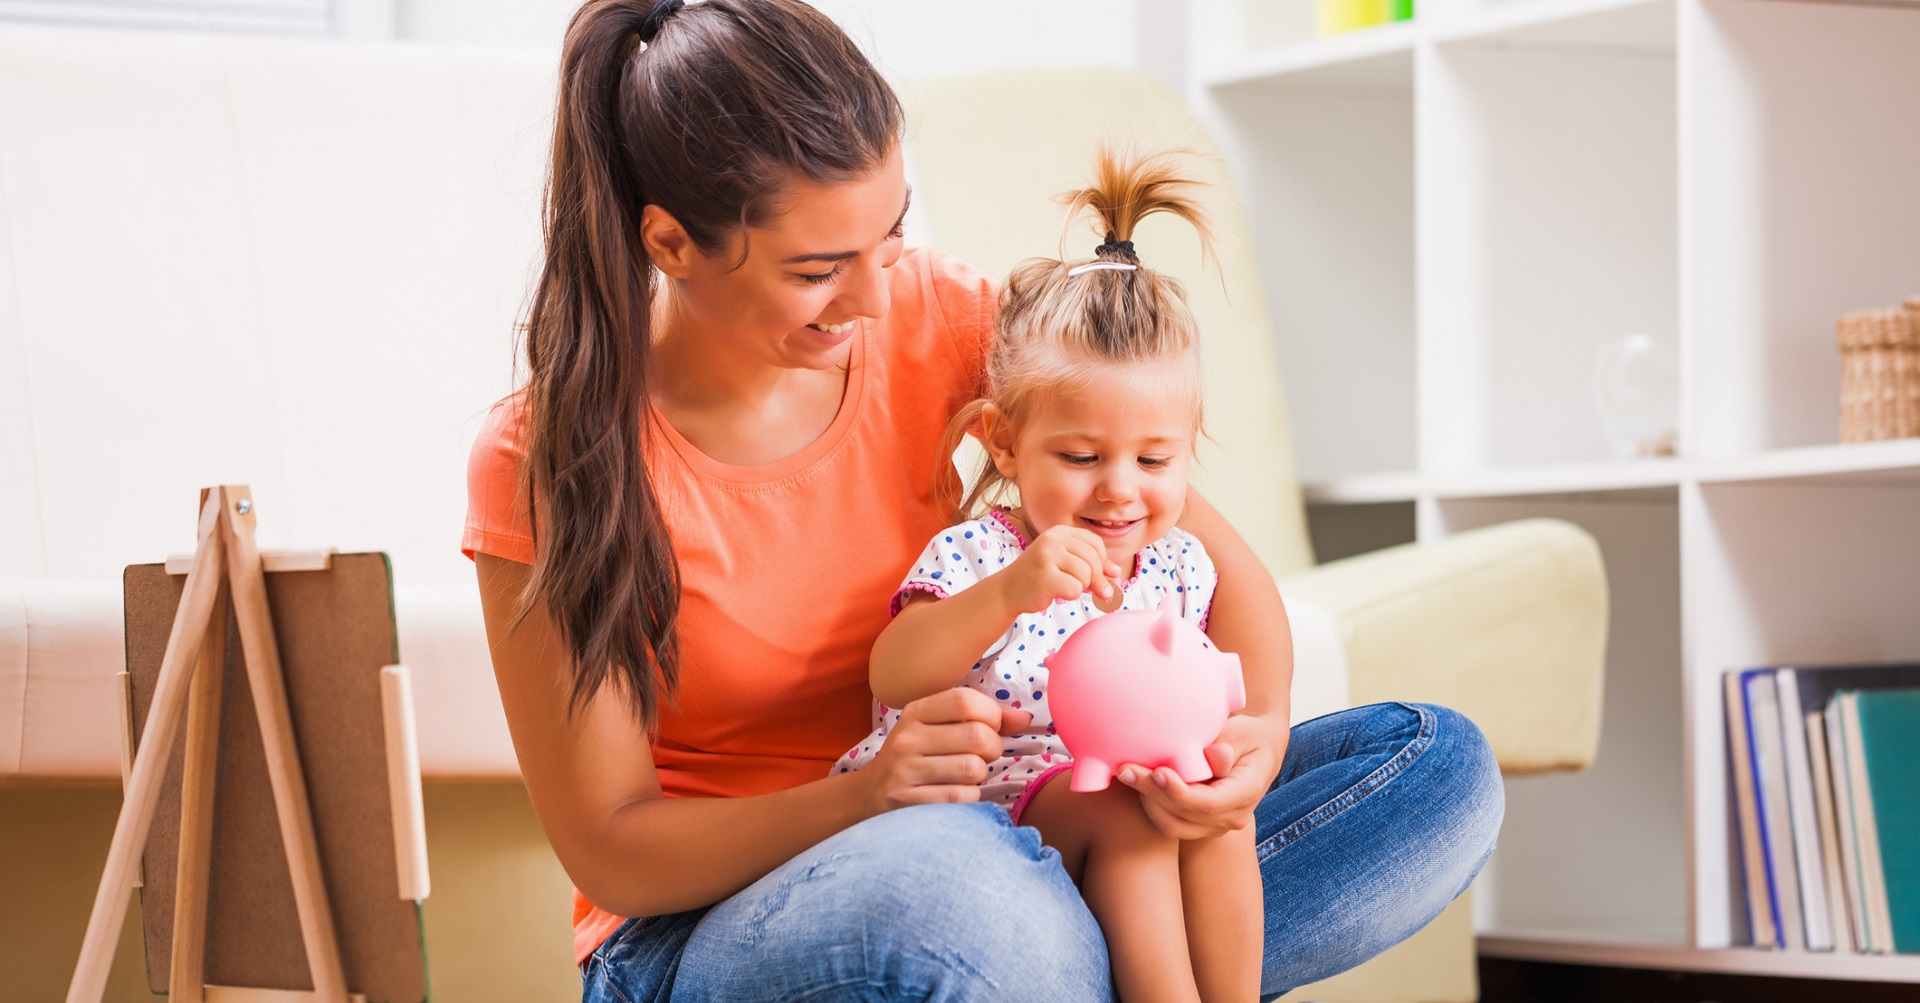 mother putting money in piggy bank with daughter